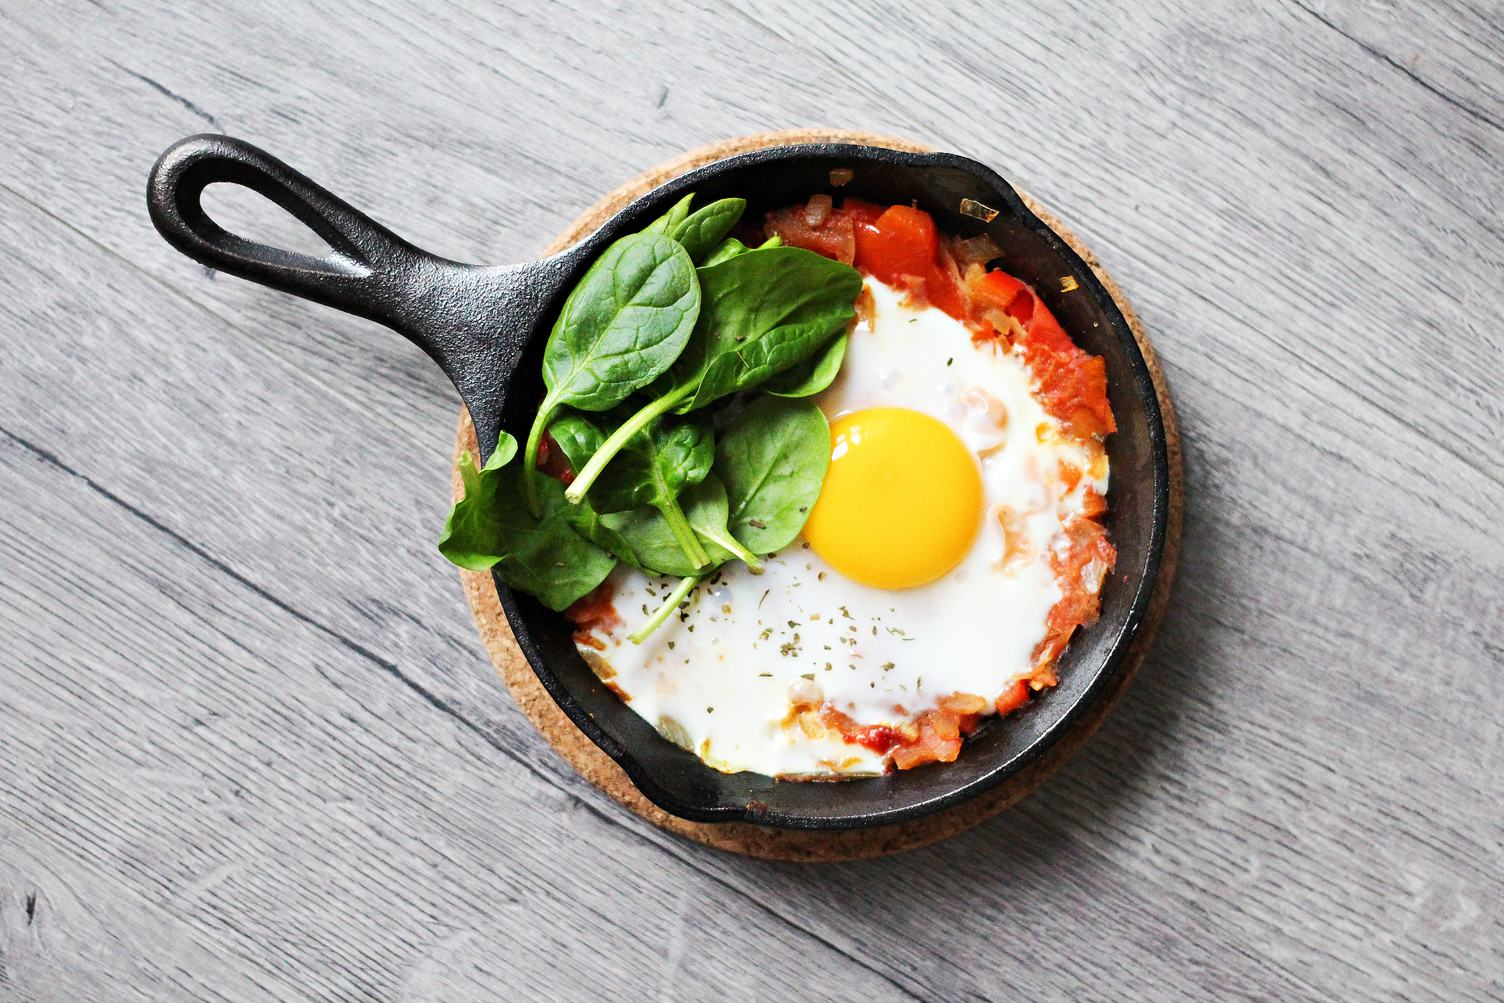 Egg with Spinach and Tomato for Breakfast